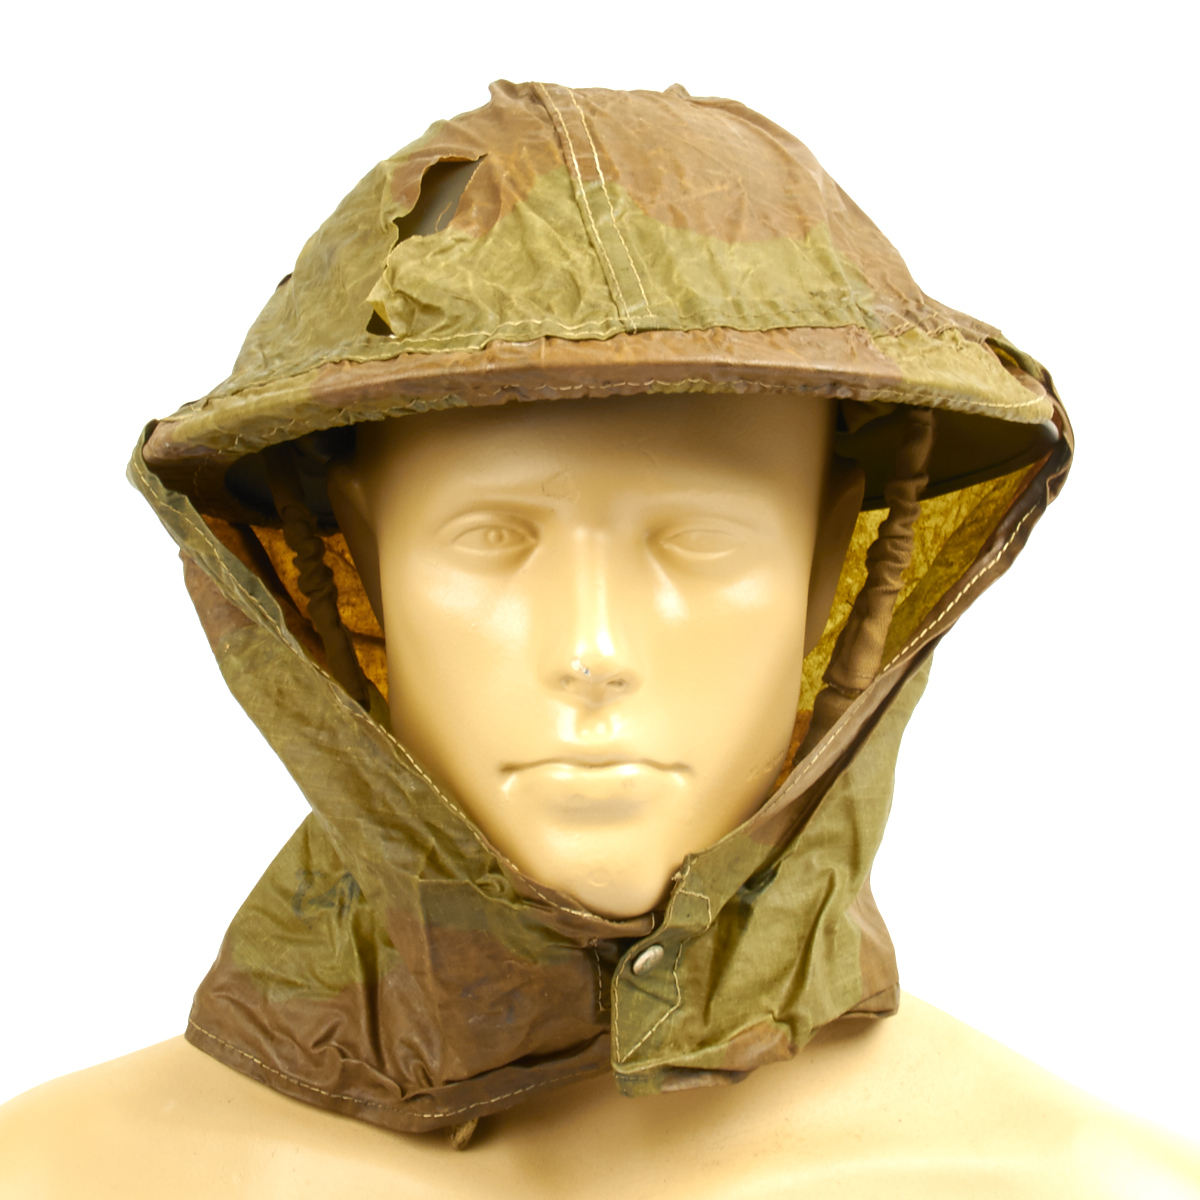 Dating army helmets